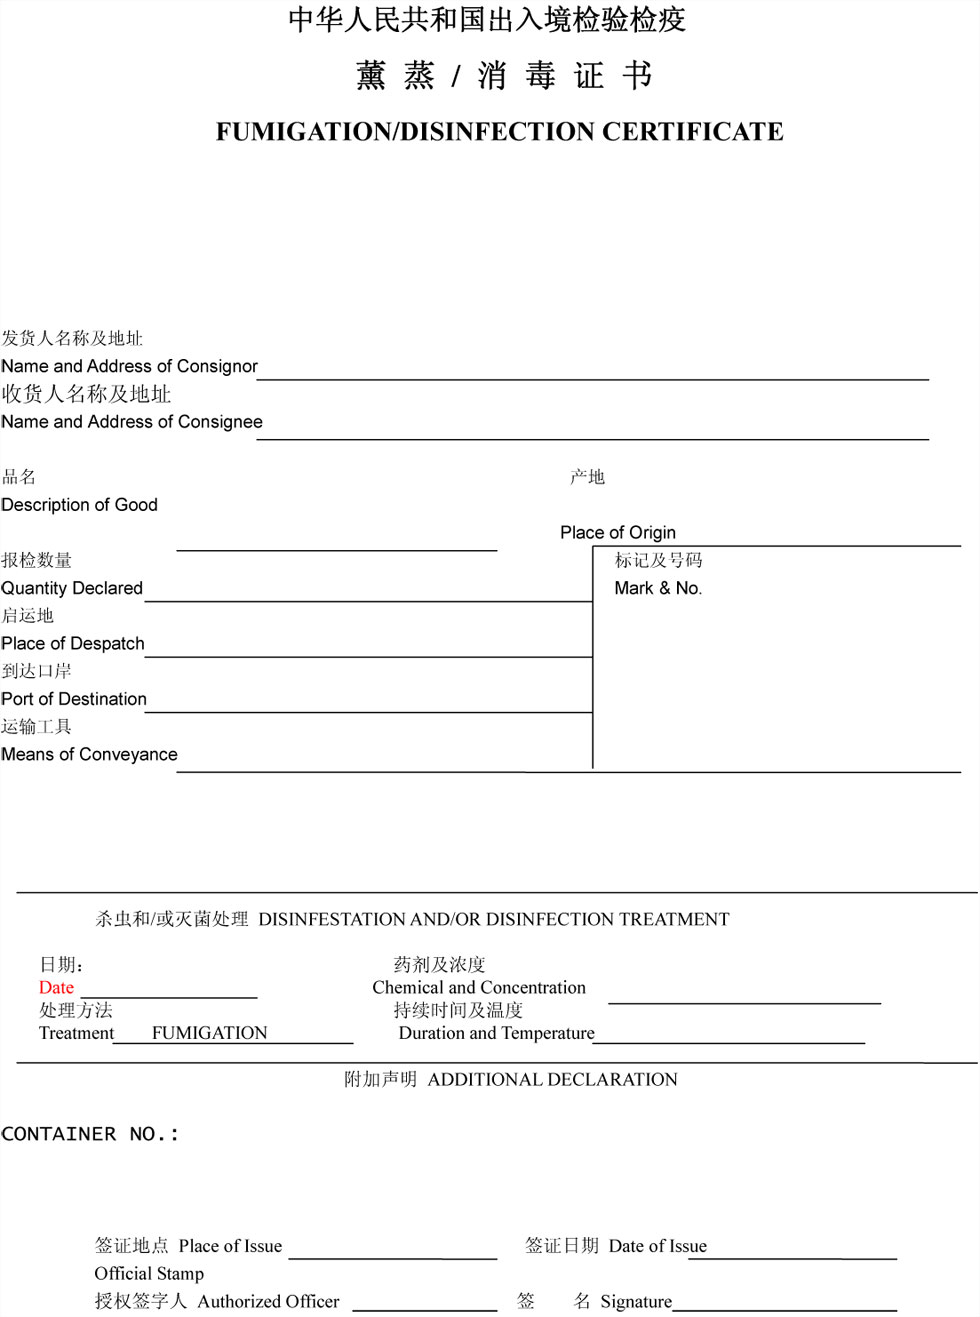 Polo shipping co limited customs insurance form f fumigation certificate xflitez Gallery